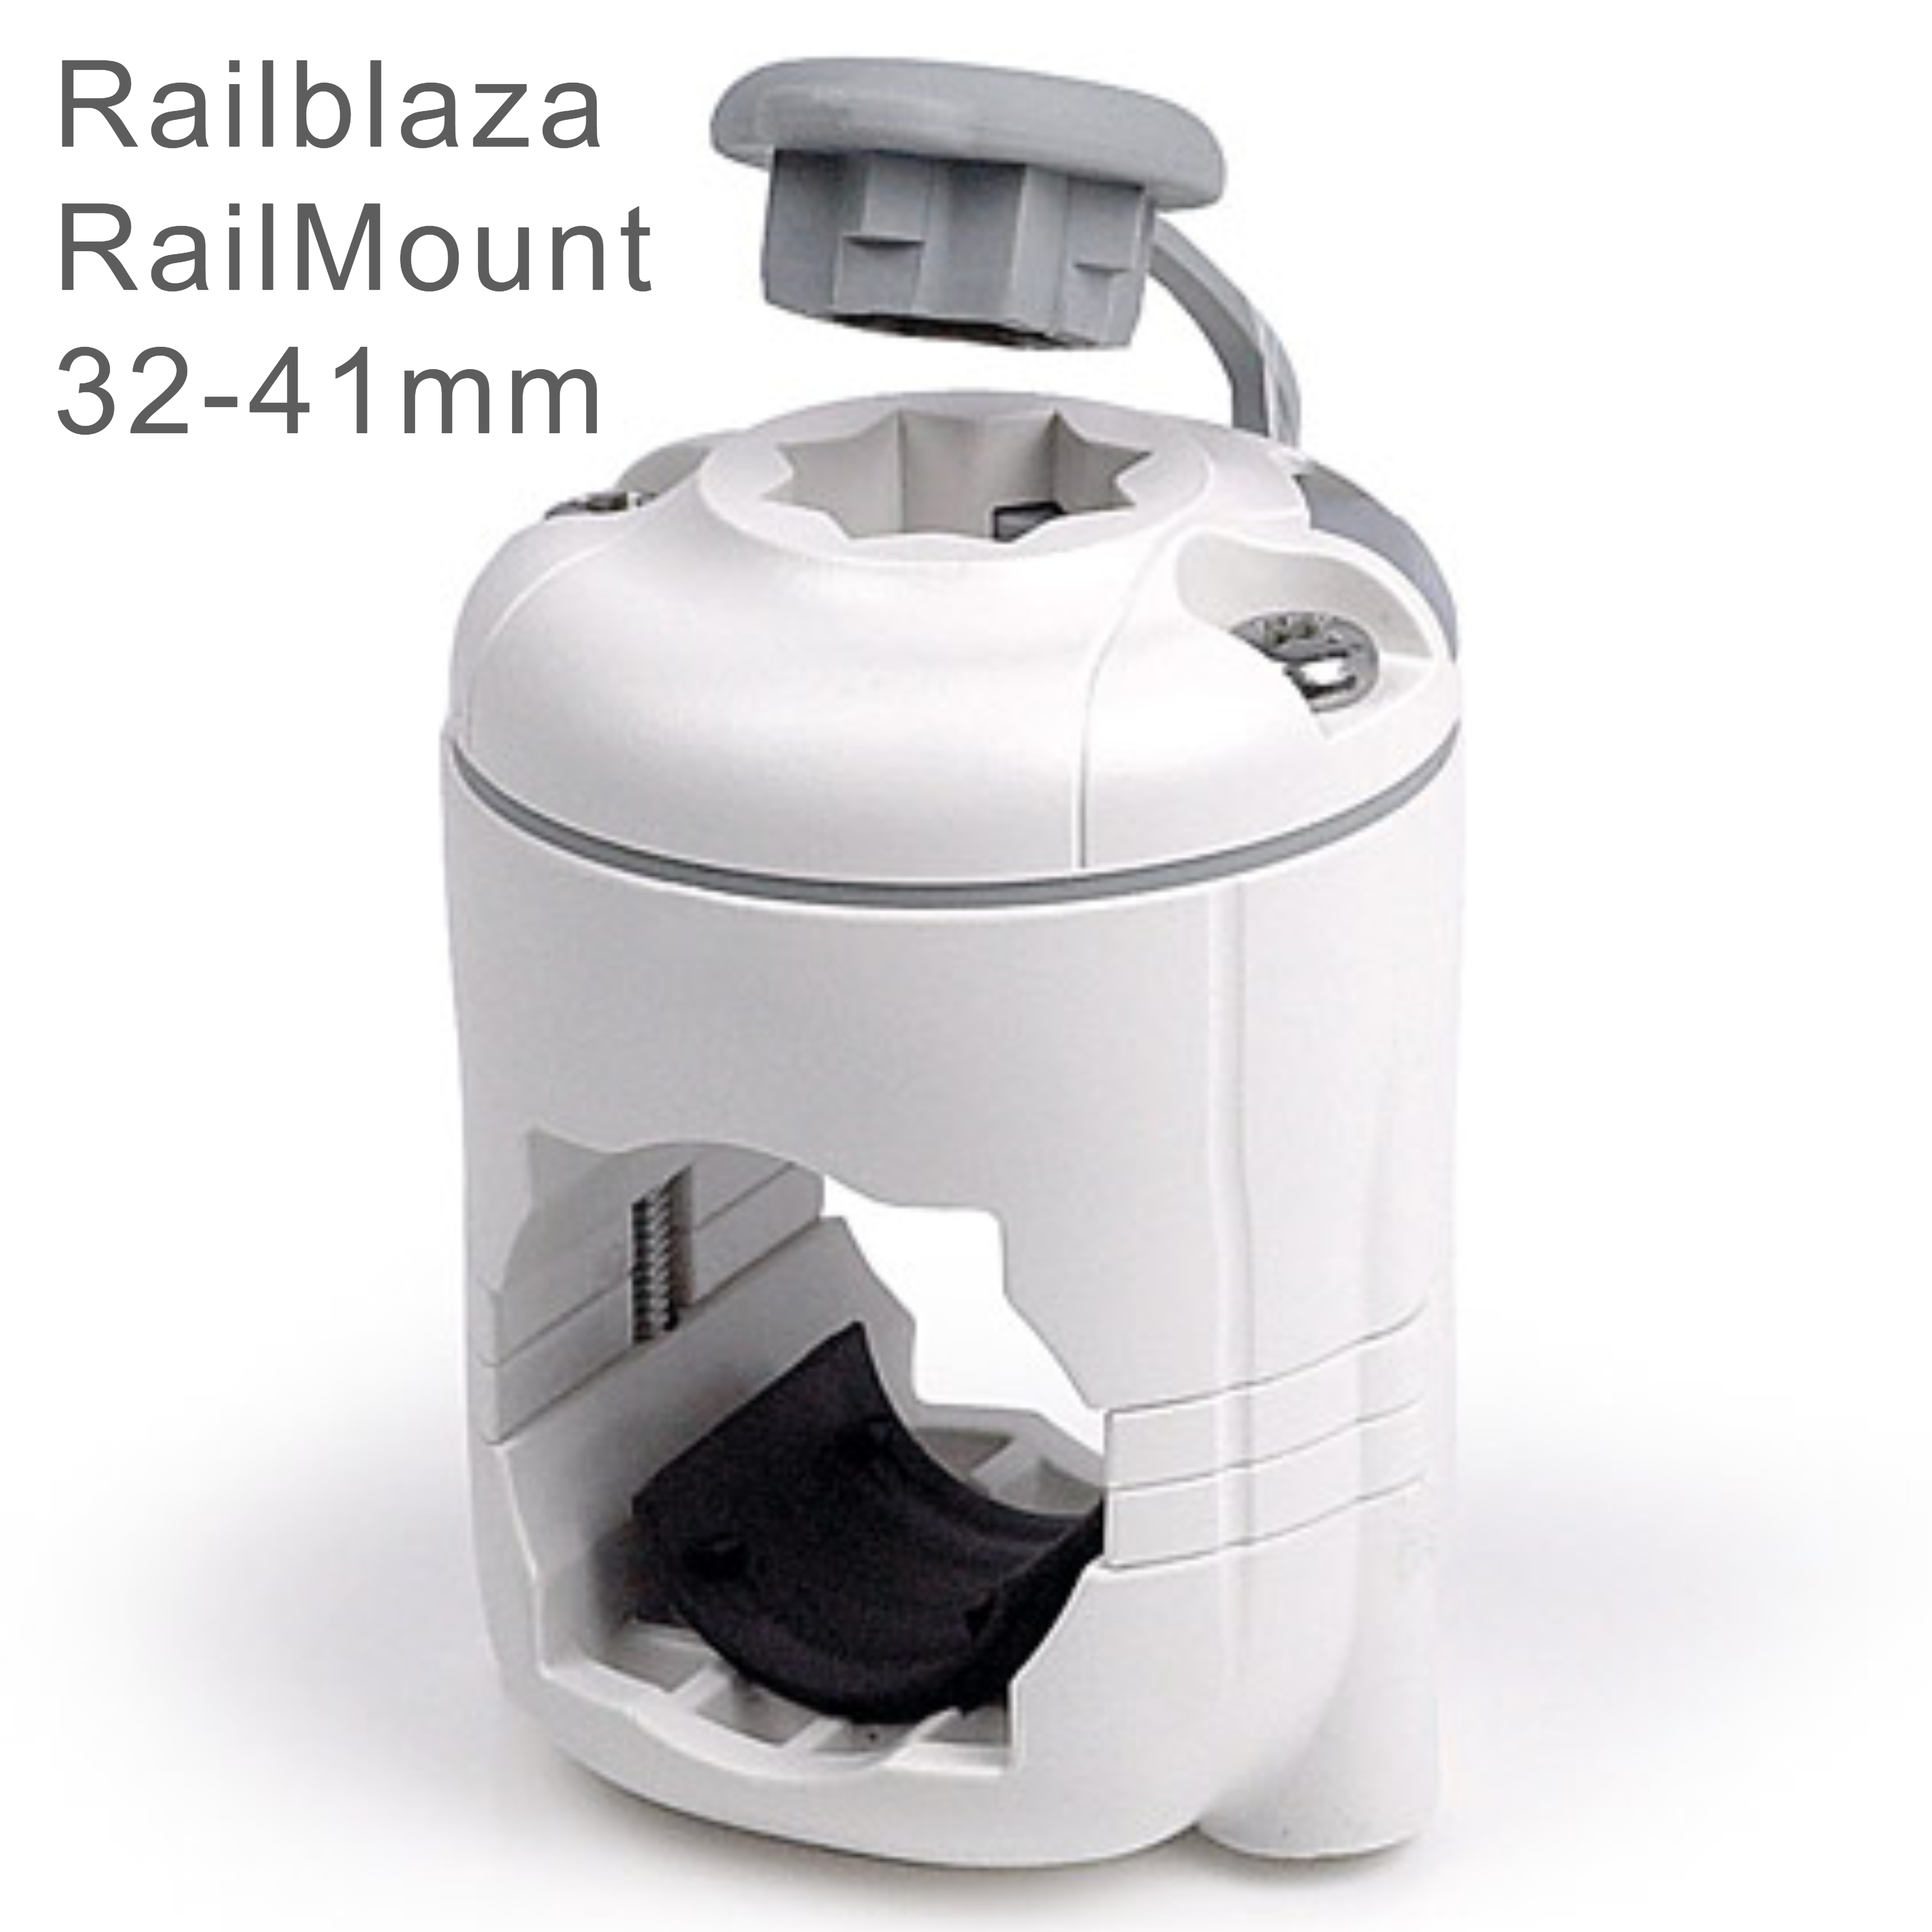 Railblaza RailMount StarPort Combo - 32-41mm|For Boat/ Rail & Kayak Mount|White